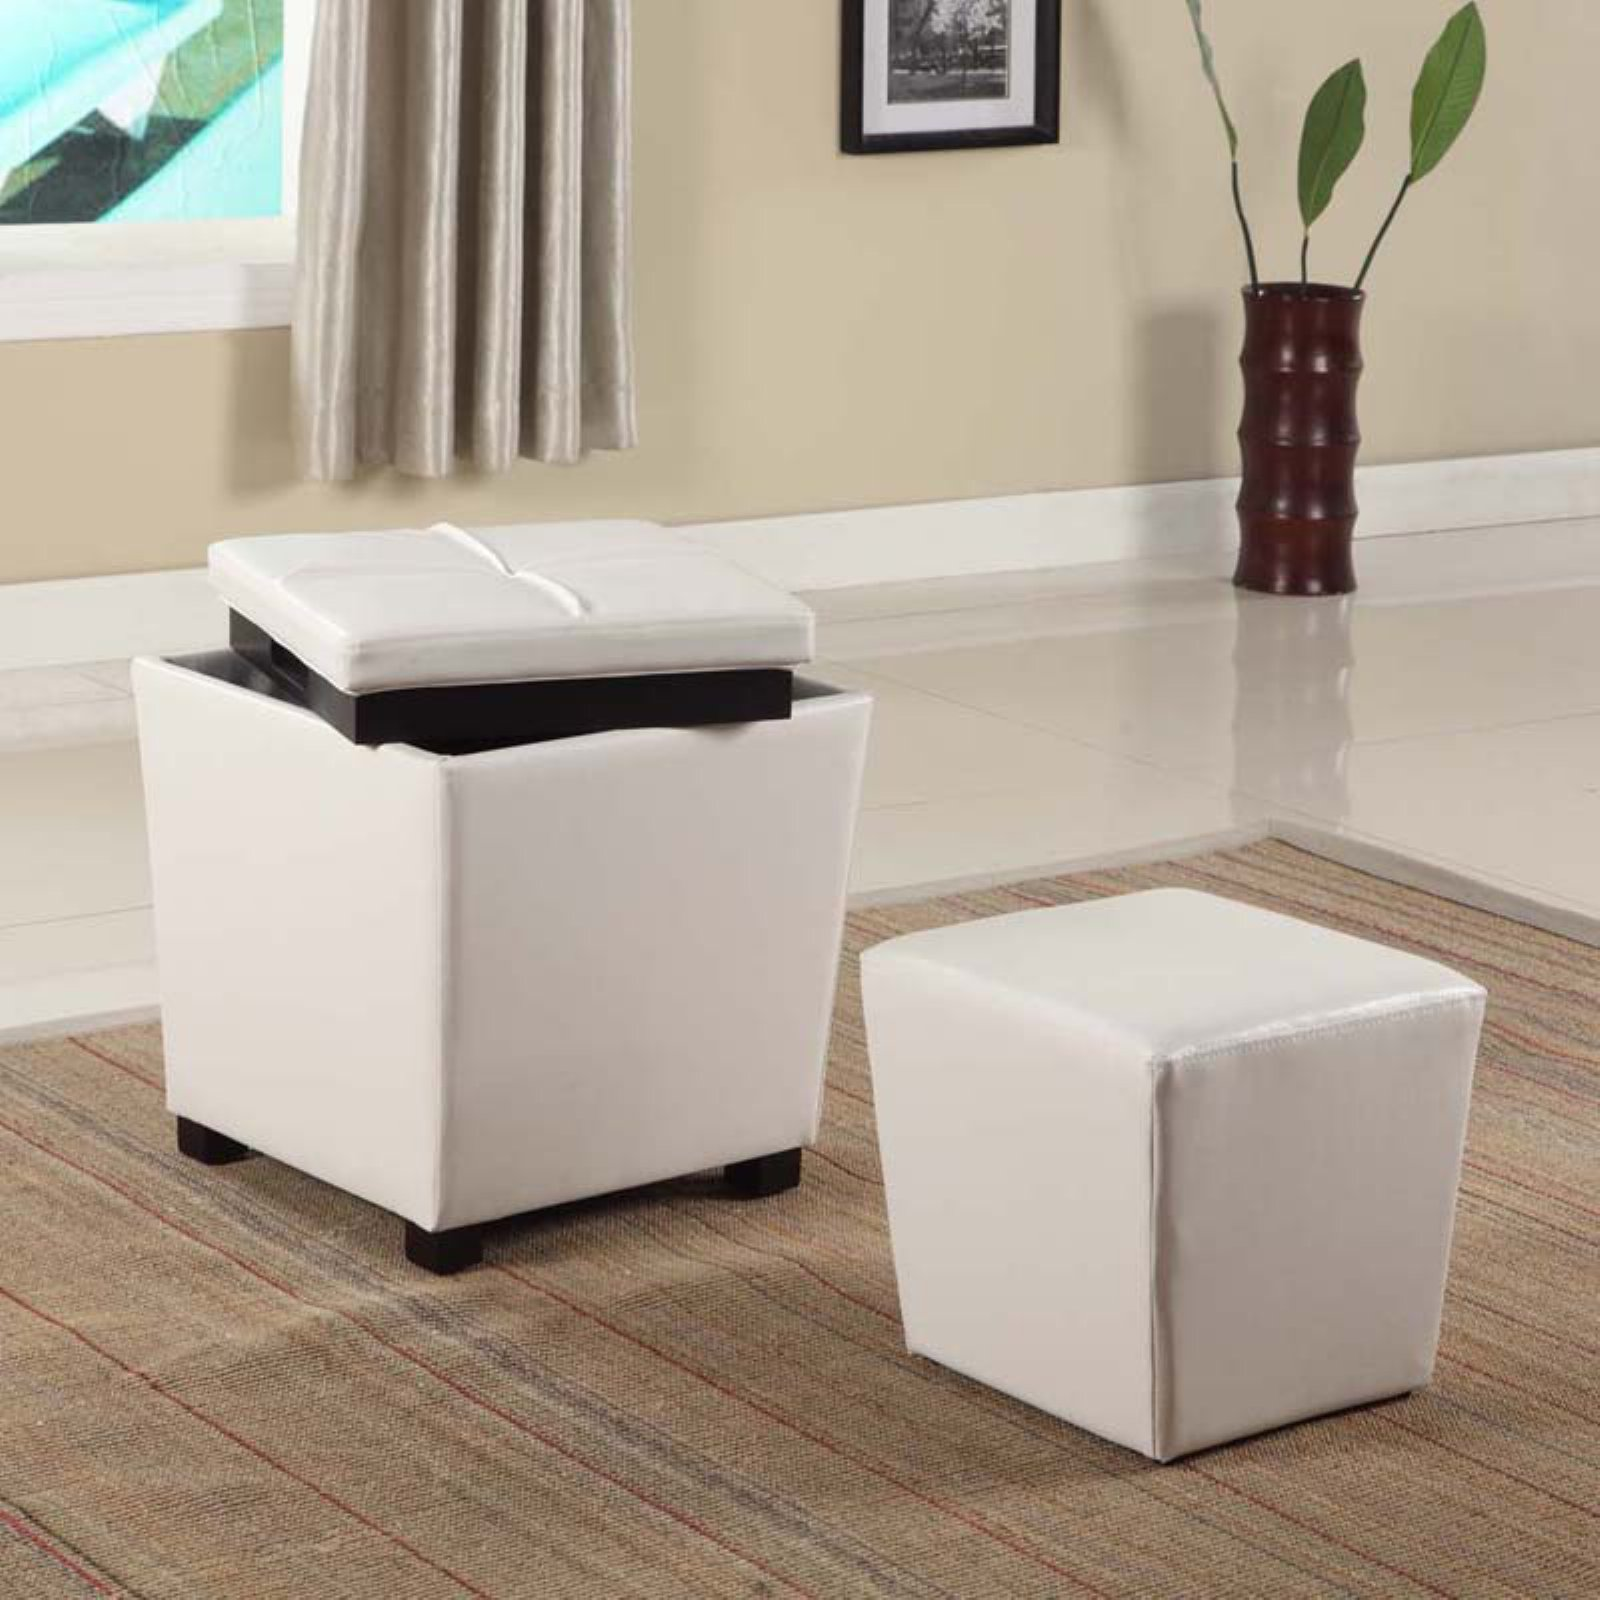 Roundhill 2-in-1 Storage Ottoman with Stool, Multiple Colors Available